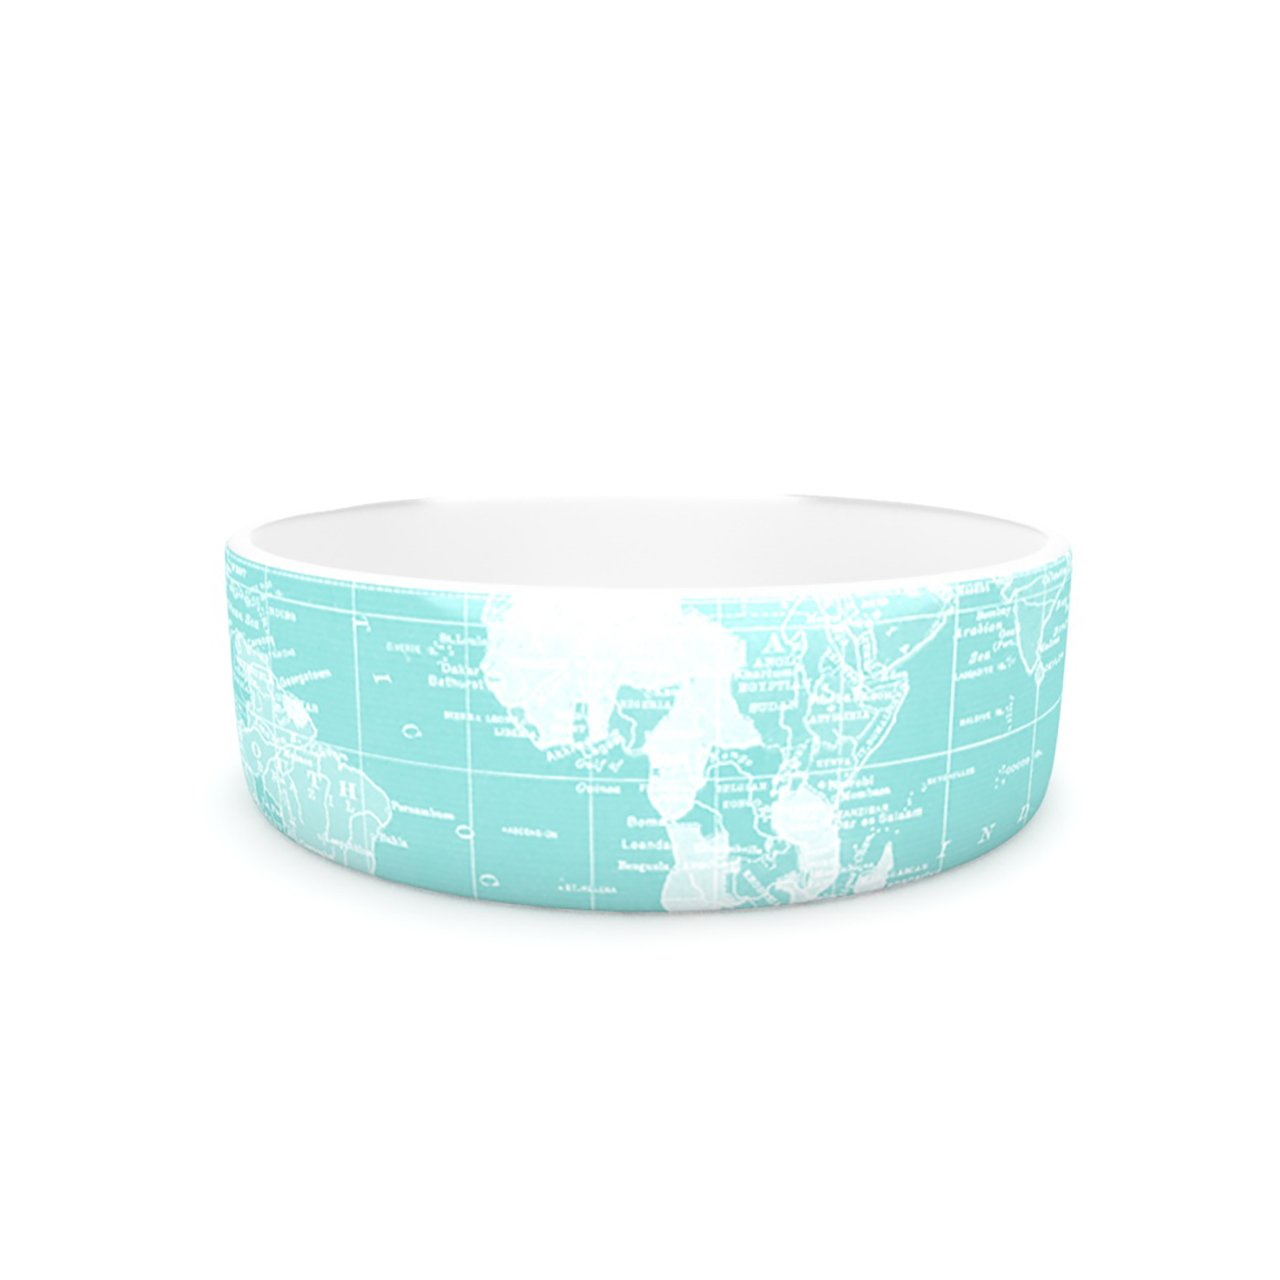 Kess InHouse Catherine Holcombe Welcome to my World  Pet Bowl, 7-Inch